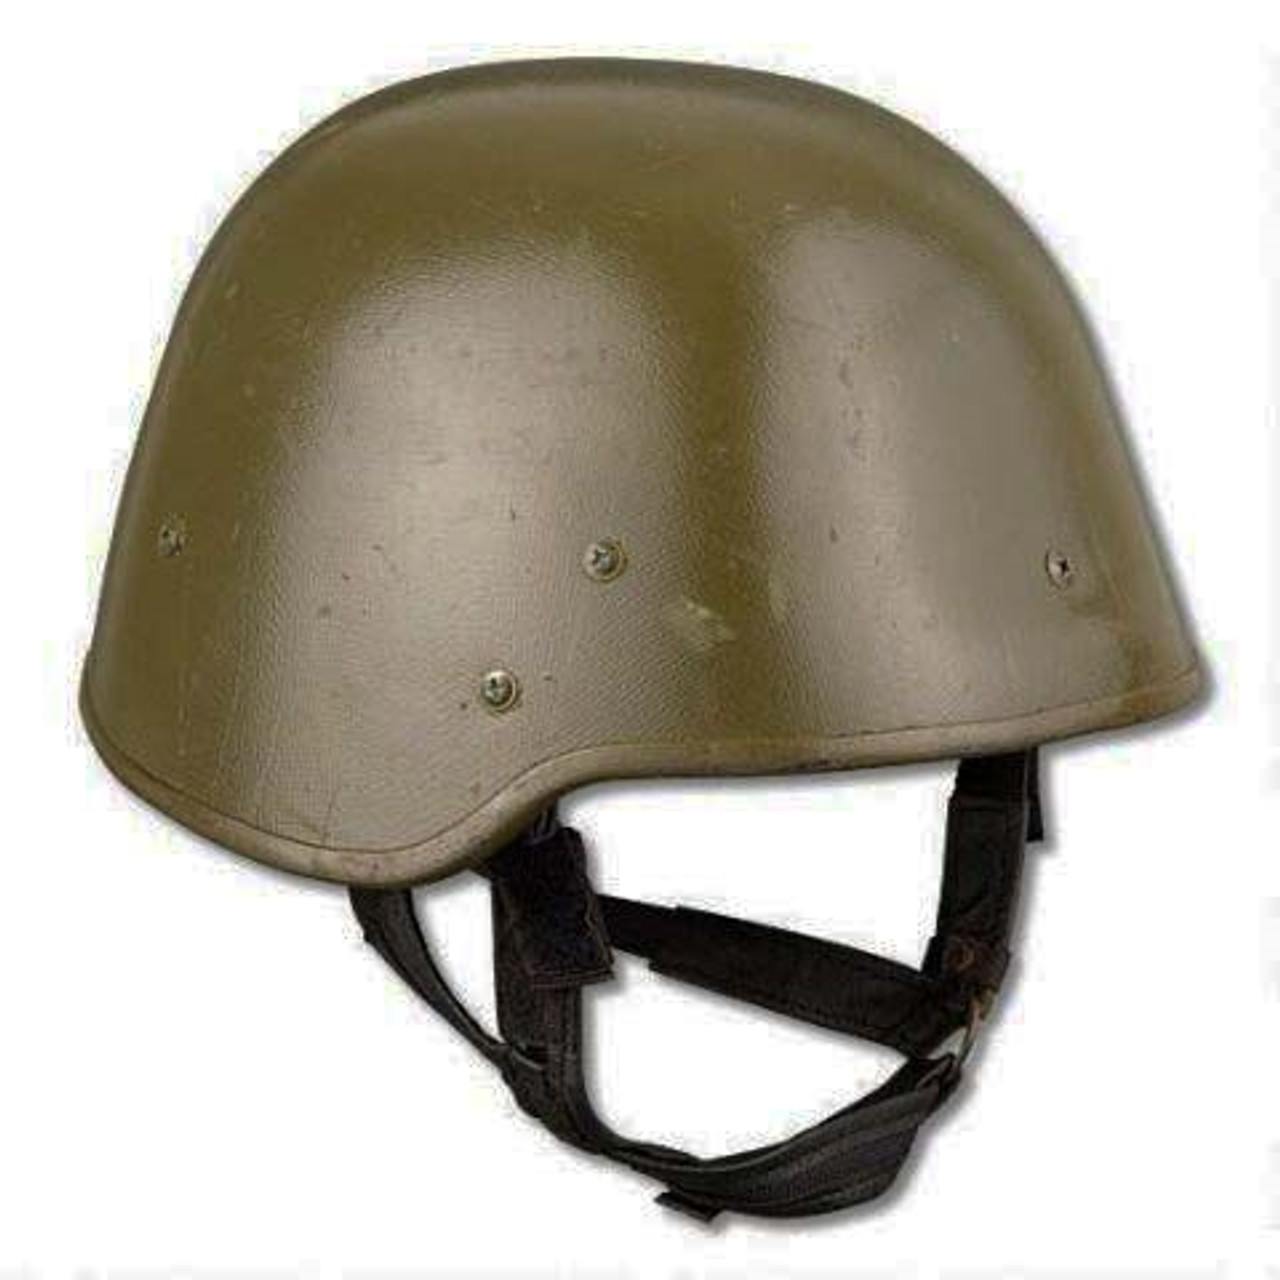 NATO Polish Kevlar Helmet With Cover from Hessen Antique